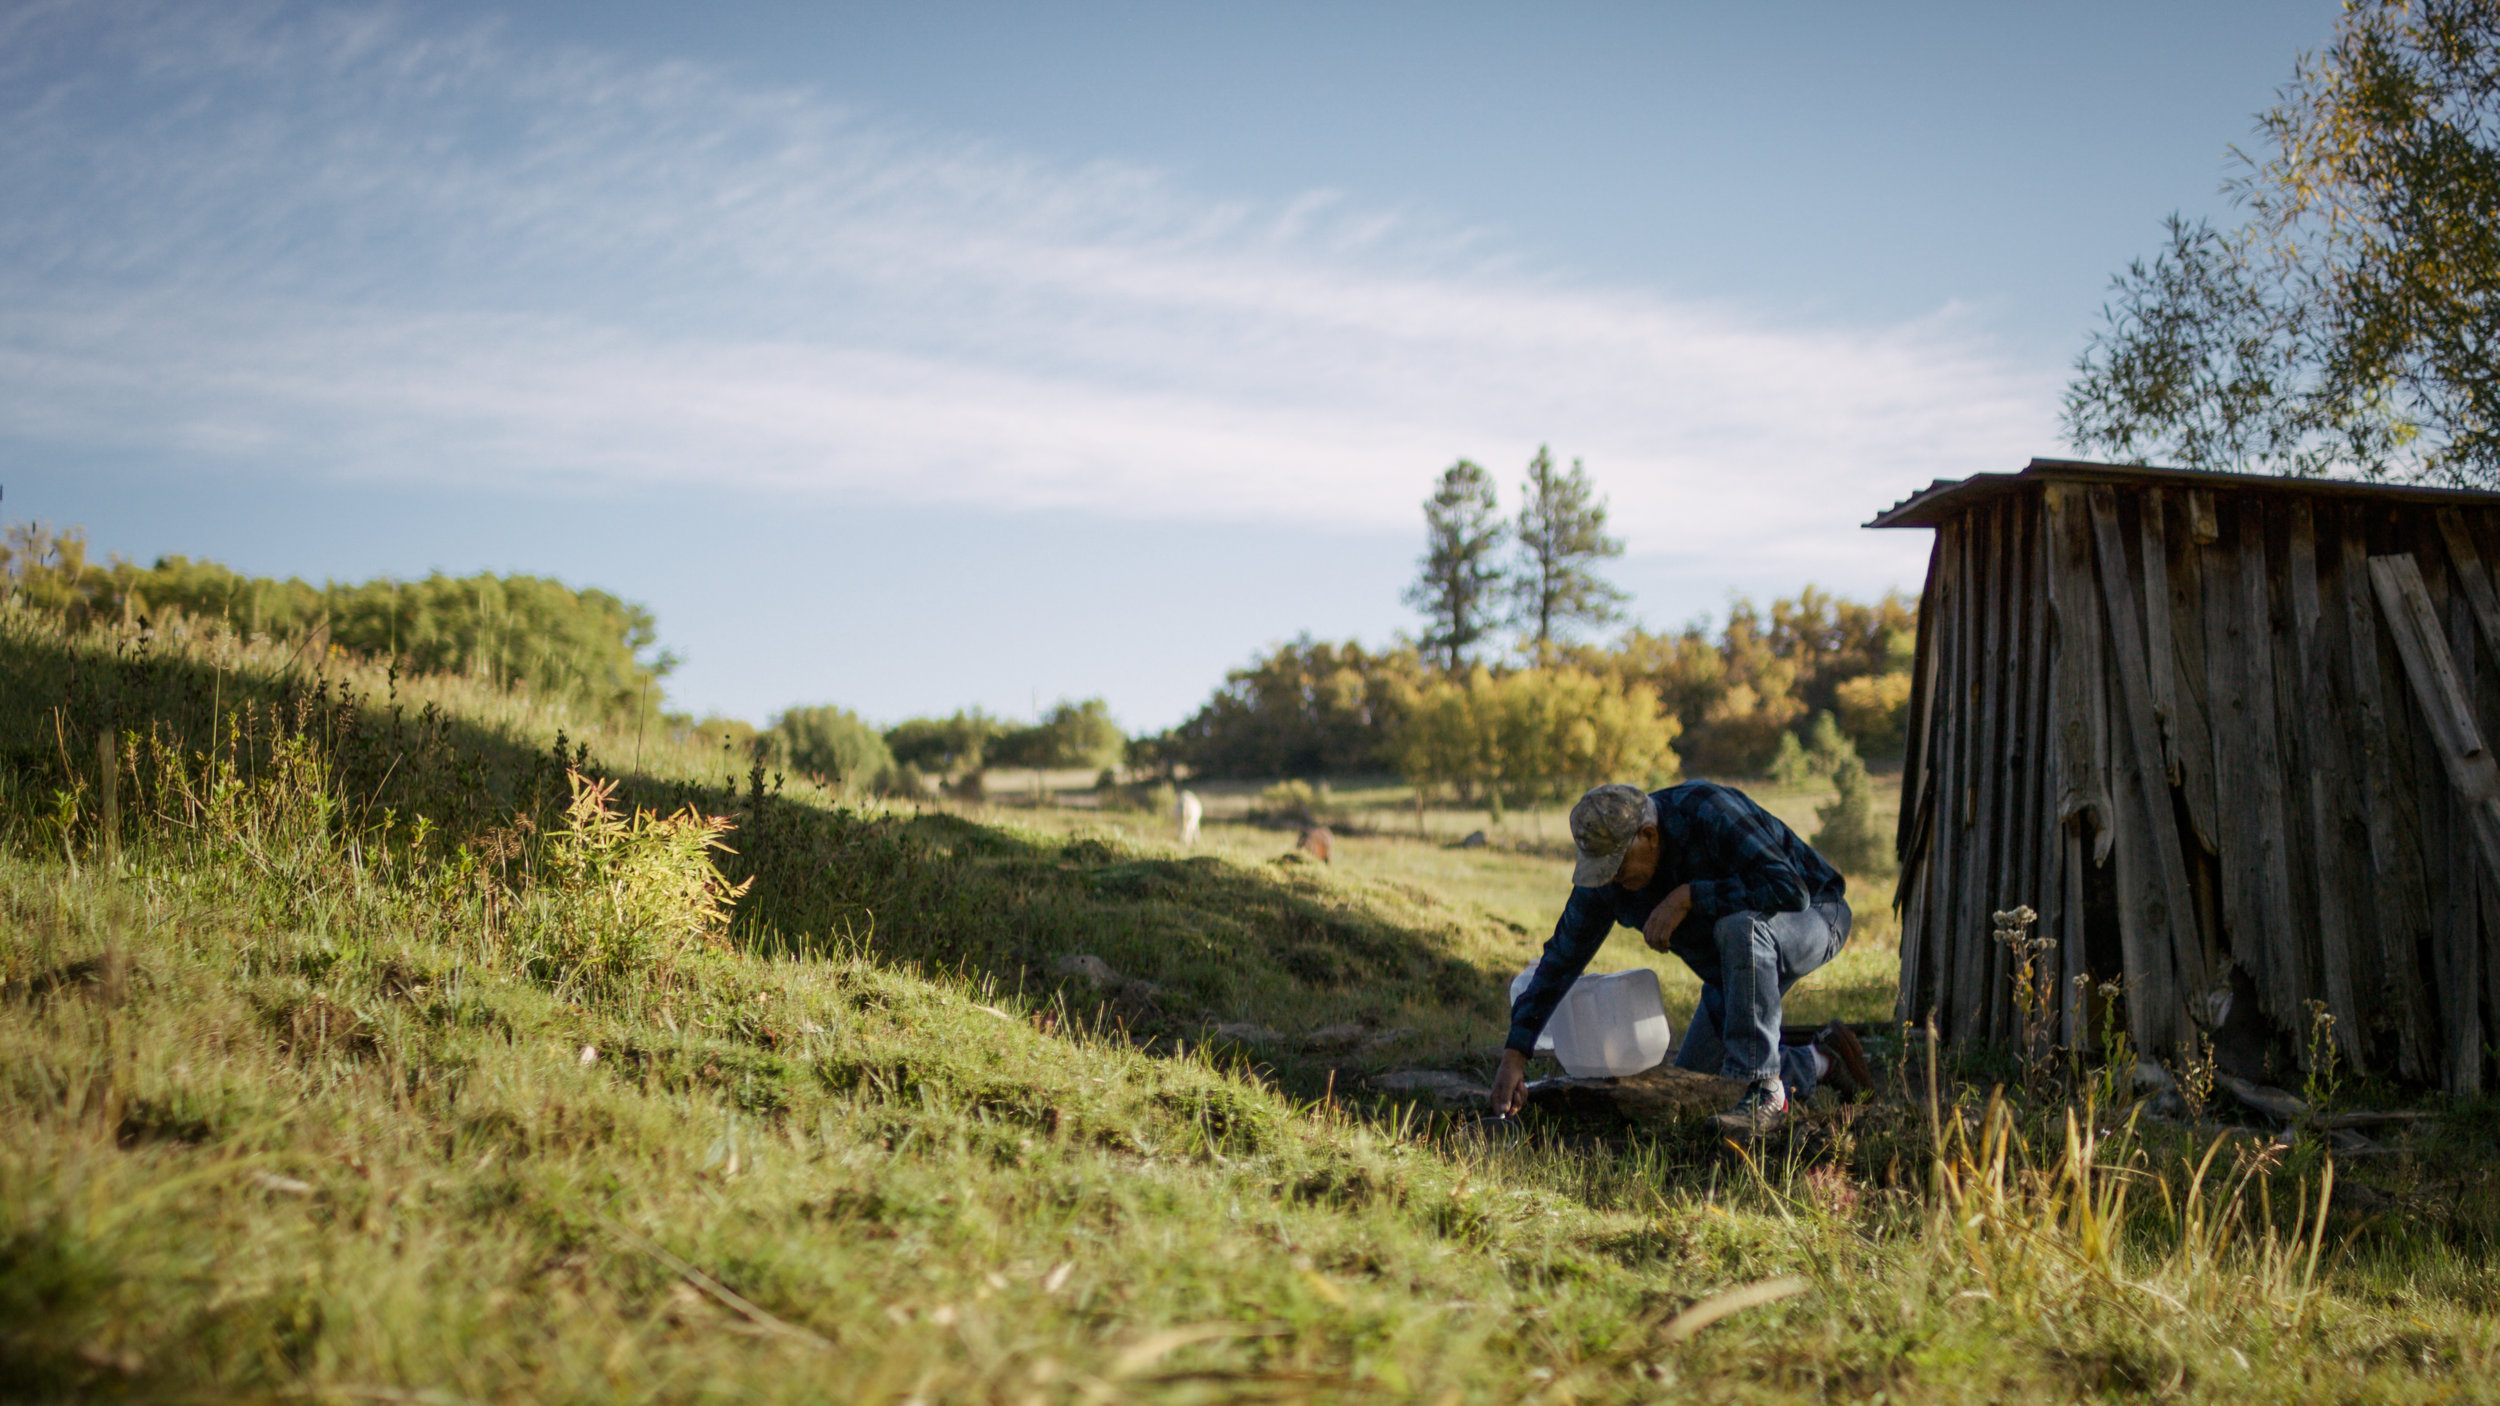 Tito Naranjo collects water from a spring on his property in Mora, NM.